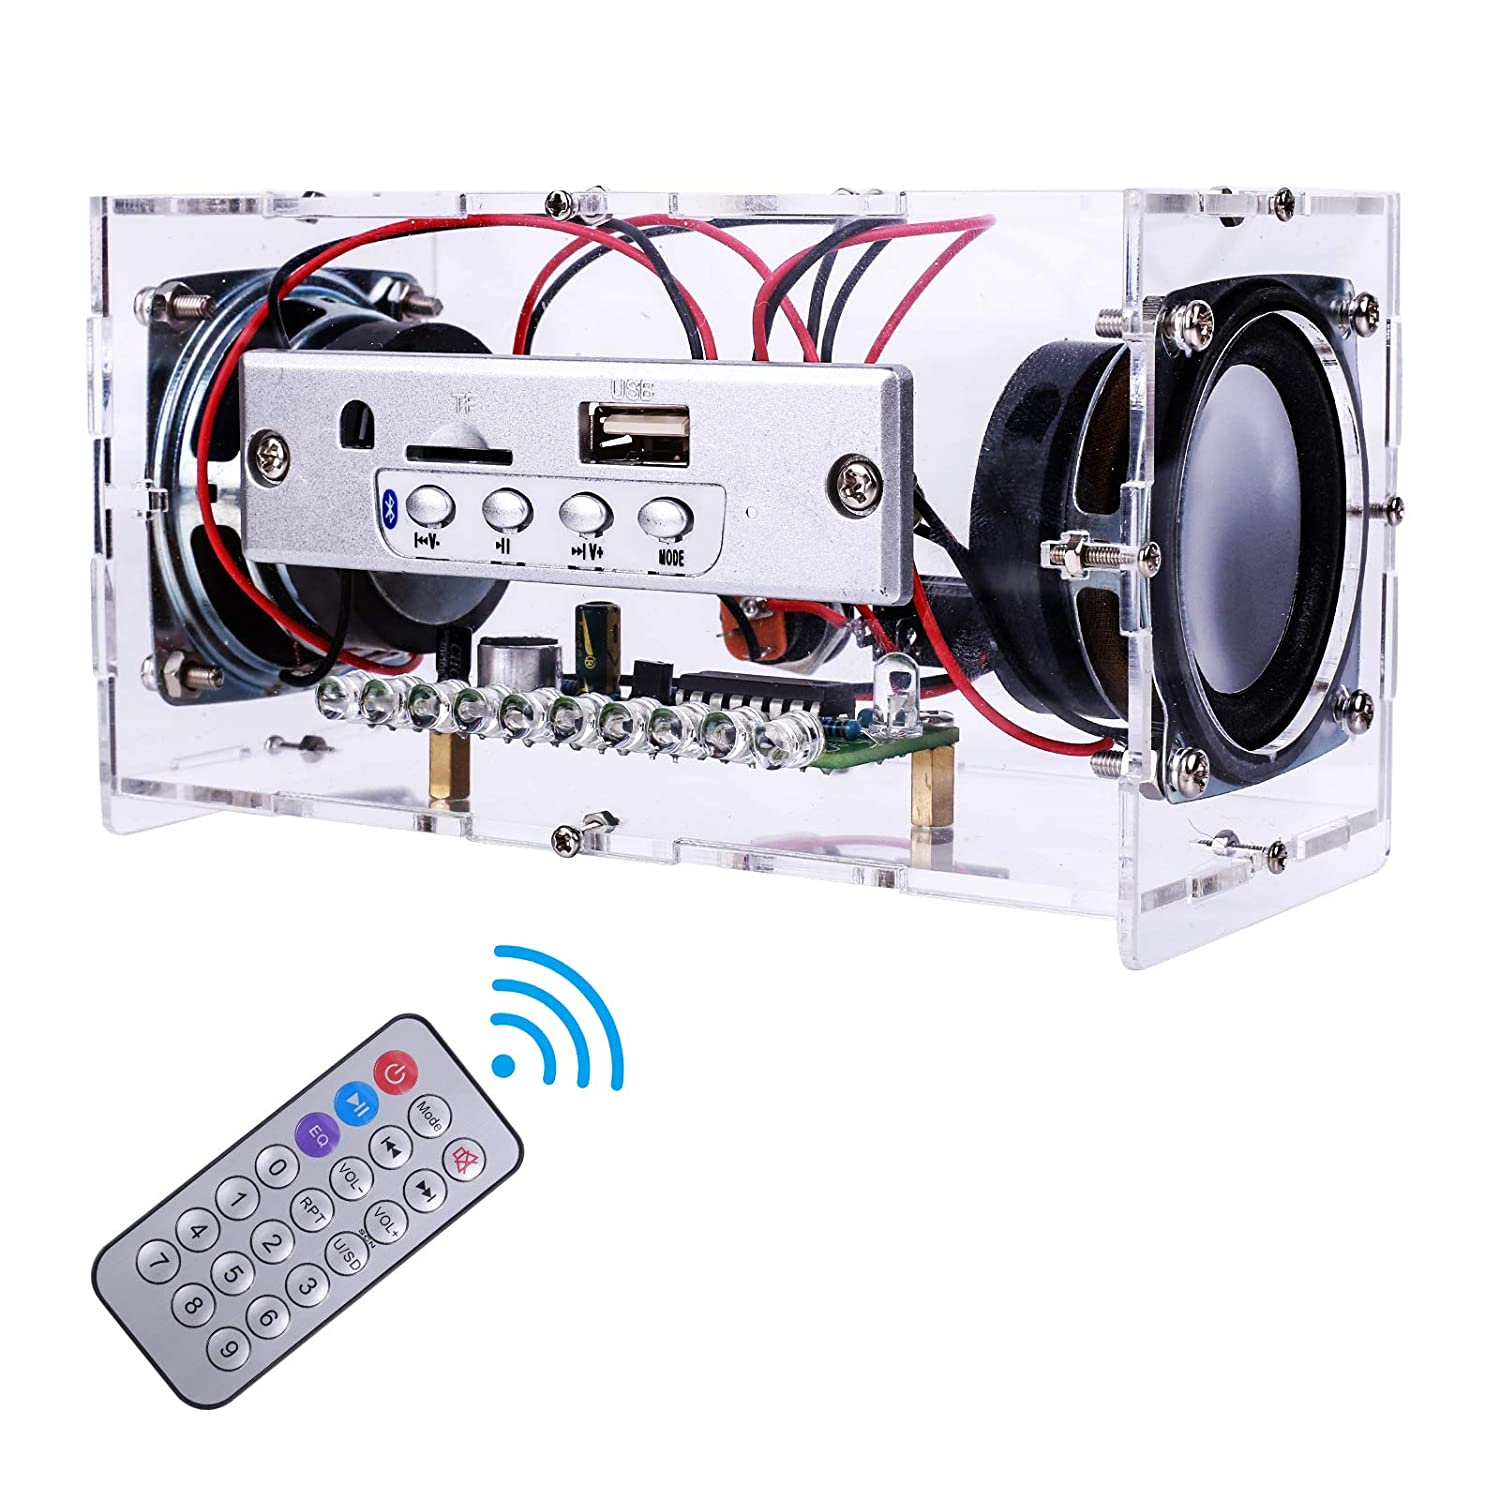 MiOYOOW Bluetooth Limited time sale OFFicial store Speaker DIY Kit LED Light Solder Flashing with